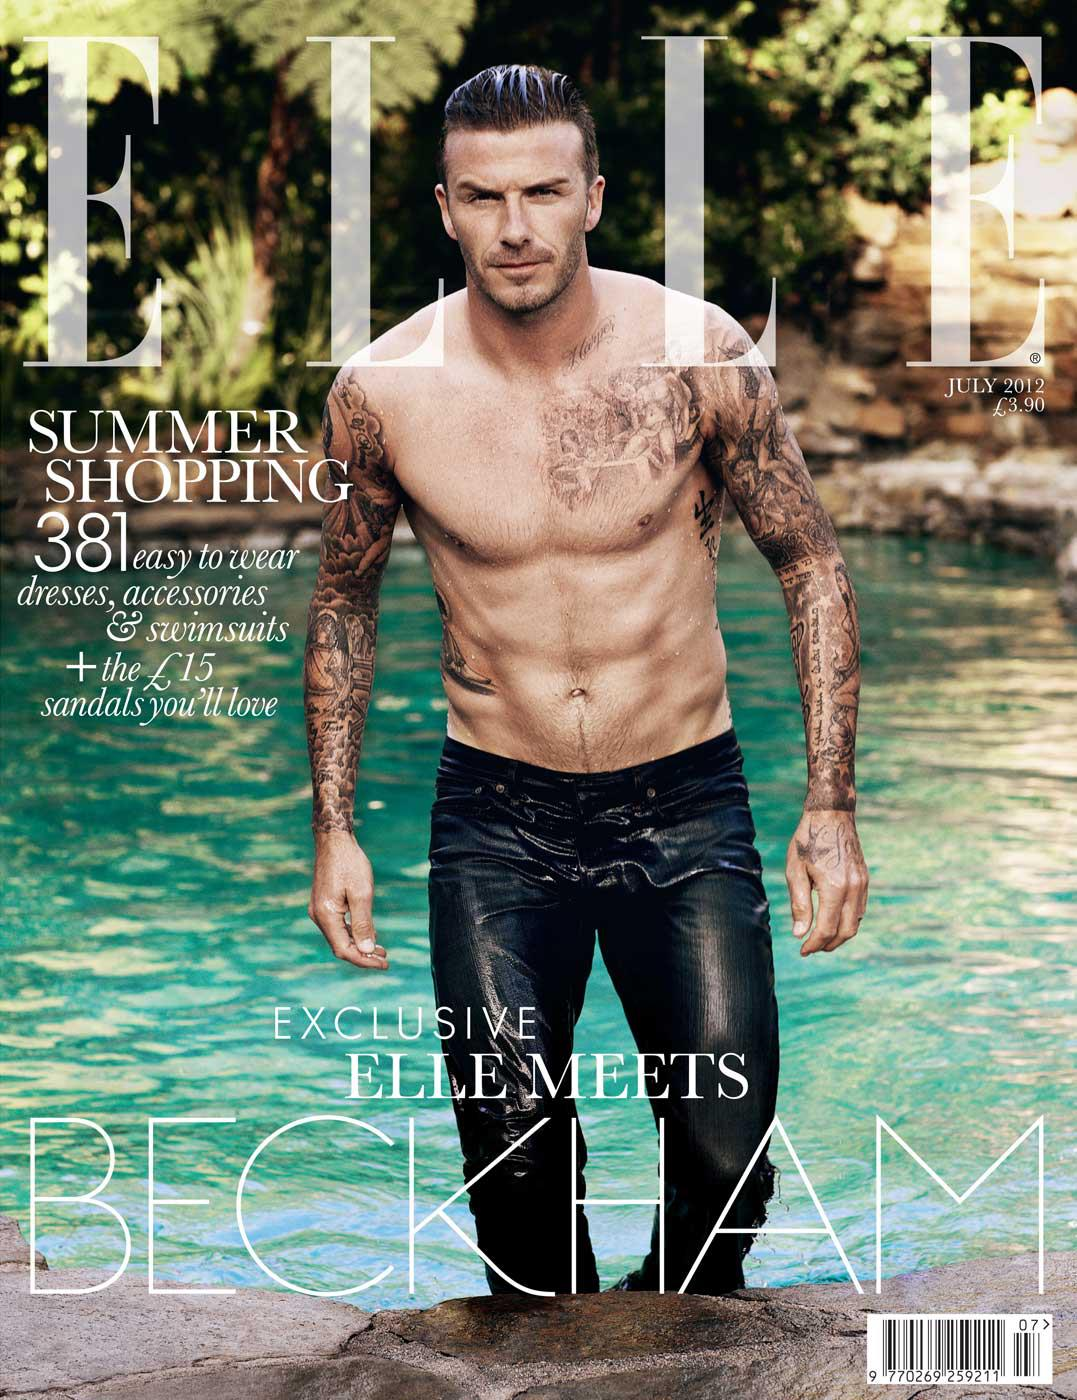 David Beckham gets his own covers of British Elle with a splendid ...